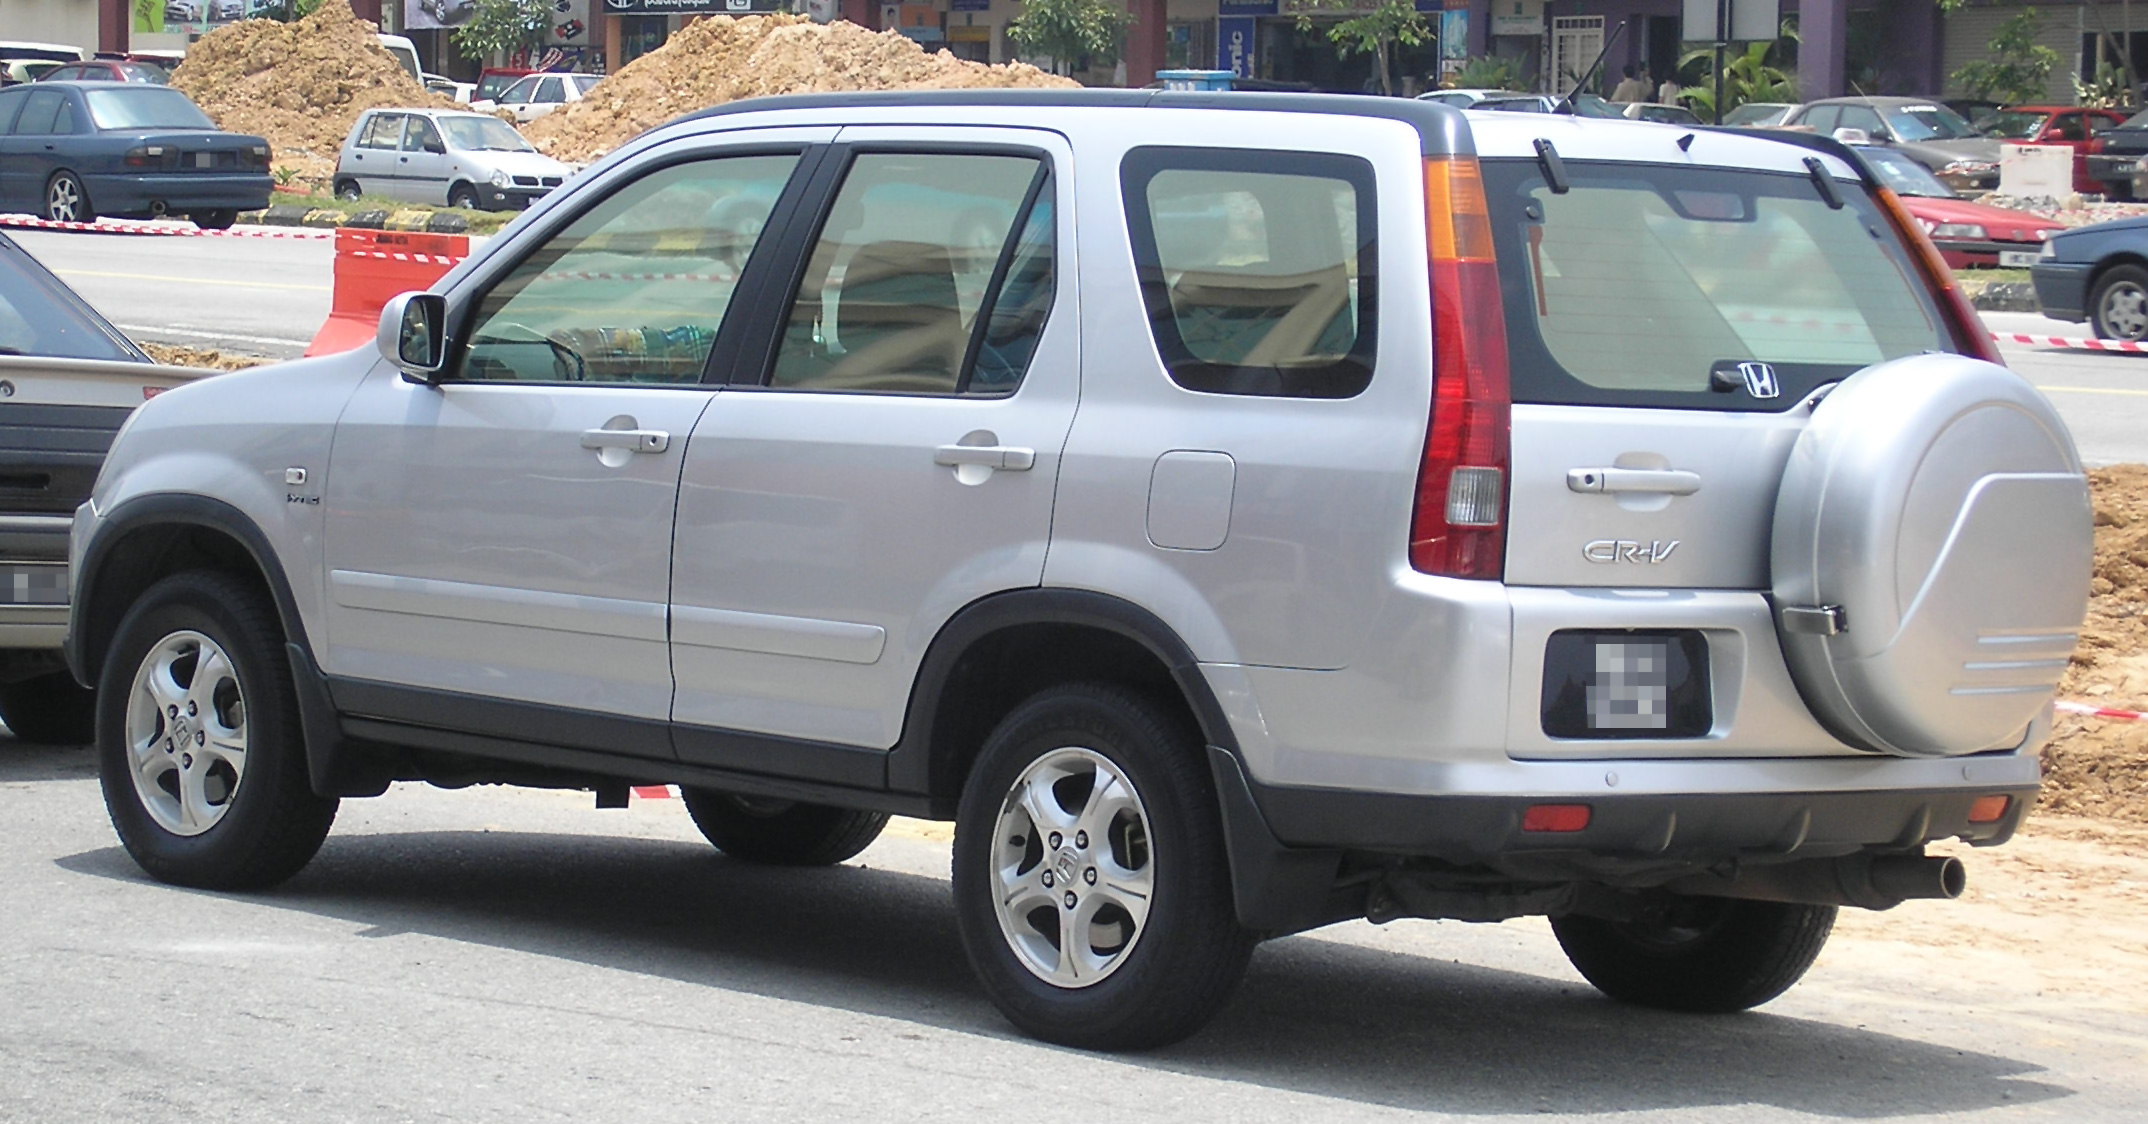 Honda CR-V I 1995 - 1999 SUV 5 door #6